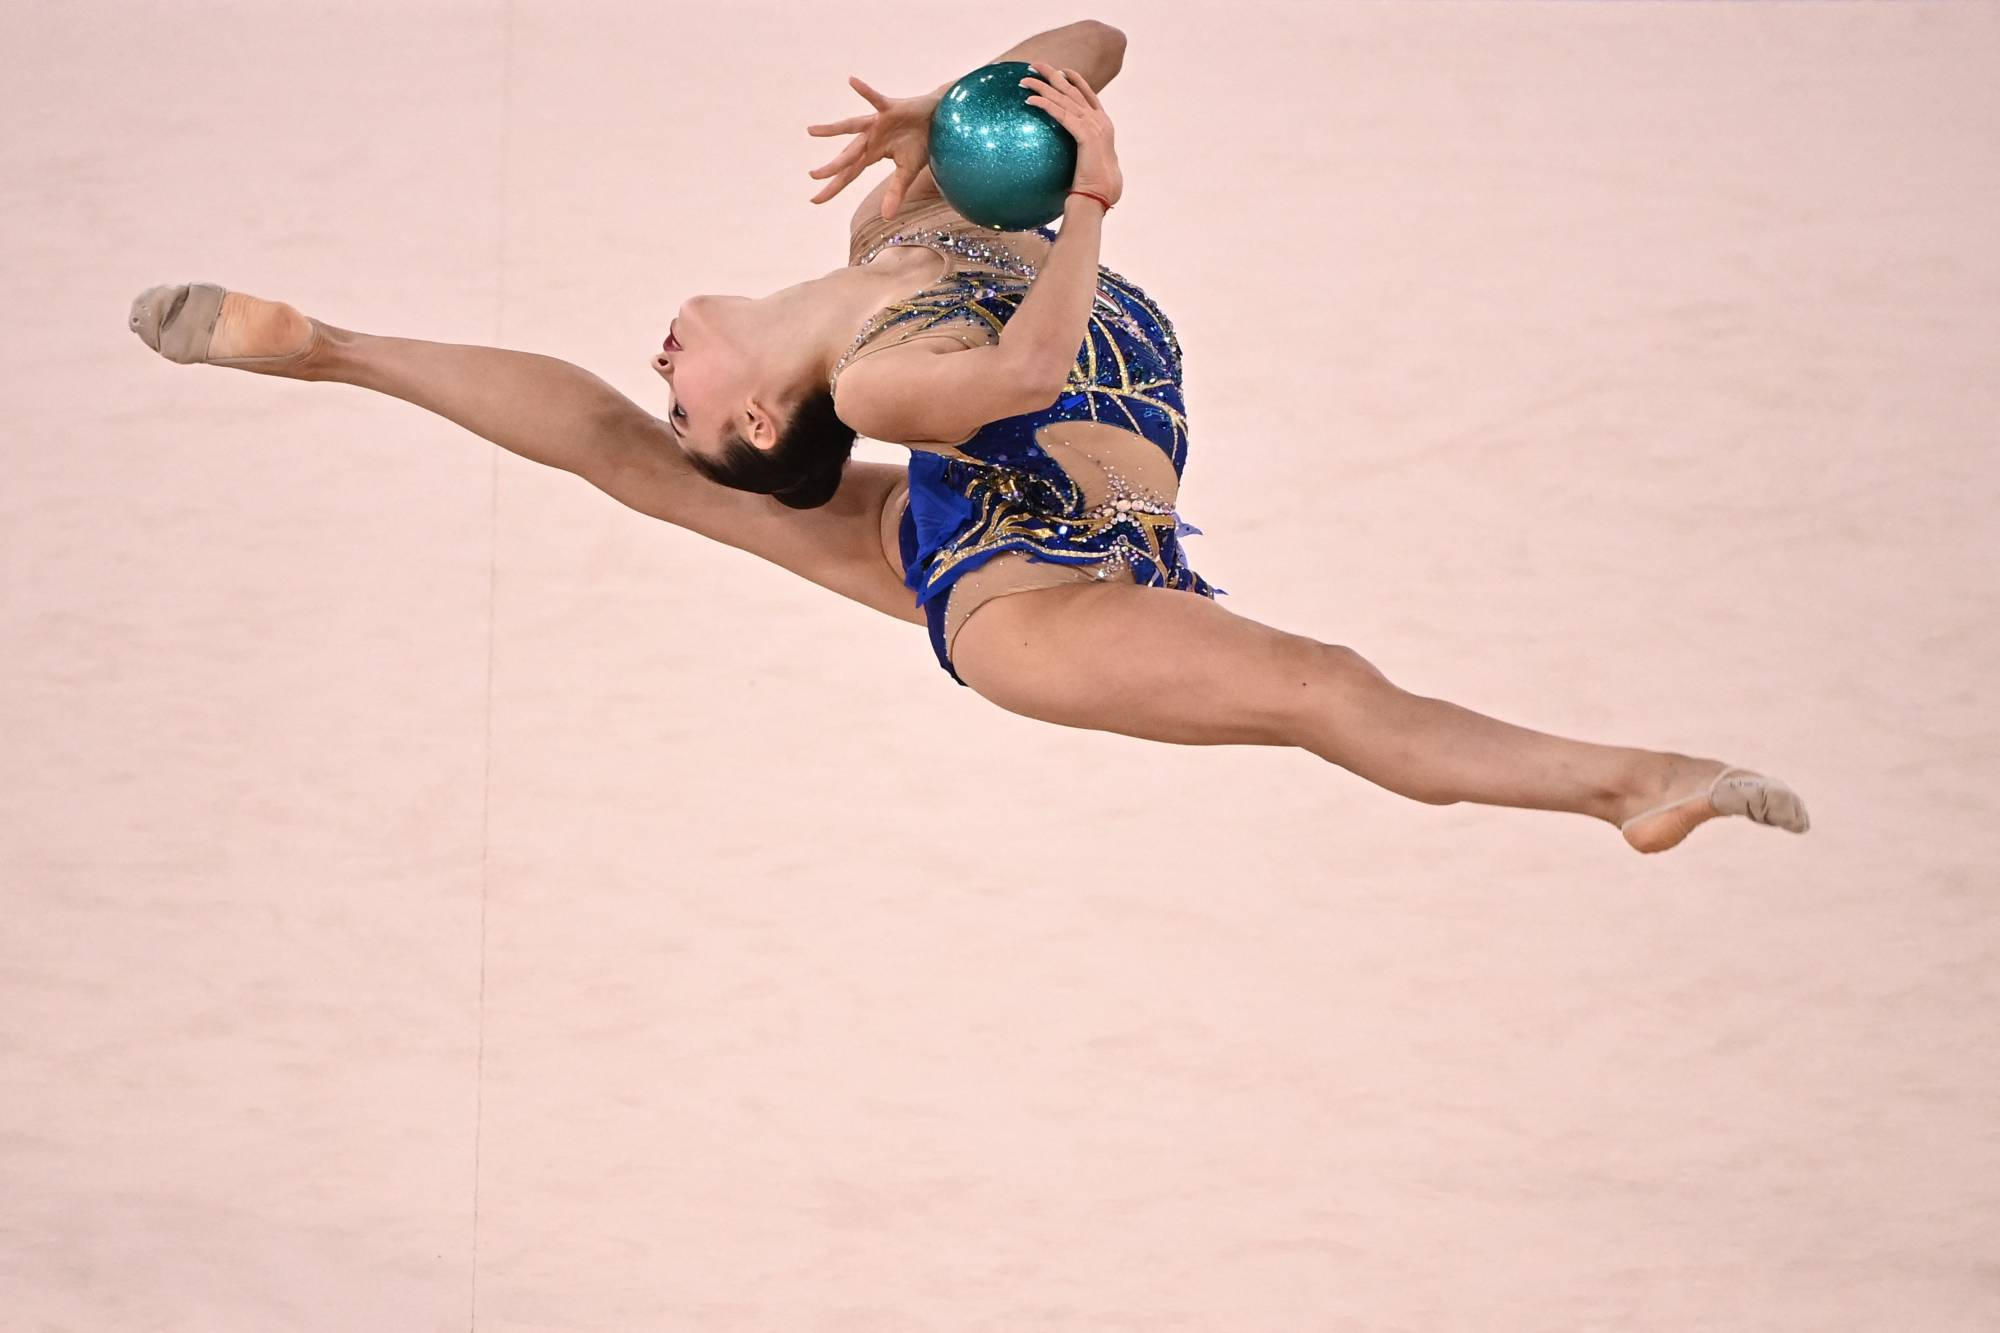 Italy's Milena Baldassarri competes in the individual all-around qualification of the rhythmic gymnastics event. | AFP-JIJI